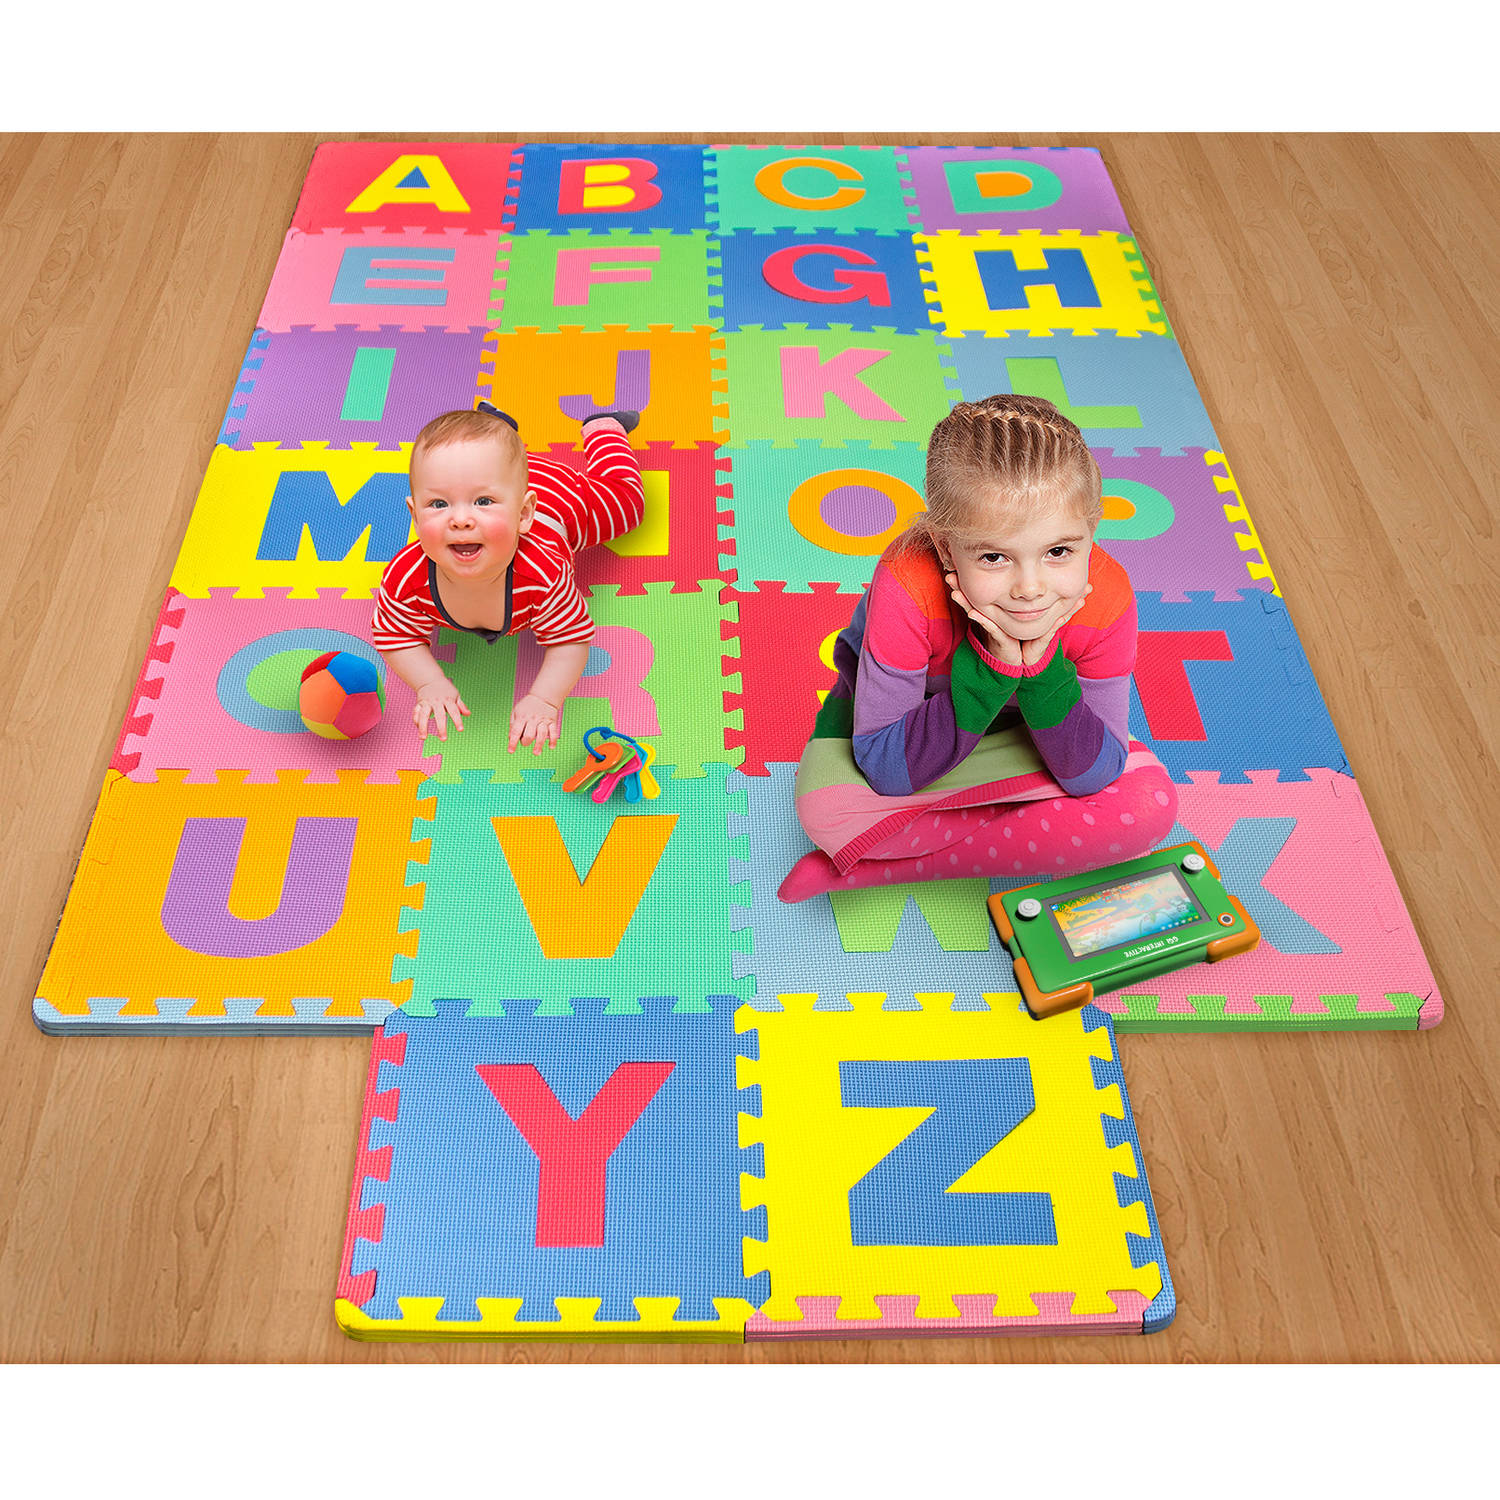 26 Piece Foam Floor Alphabet Puzzle Mat For Kids, Multi Color